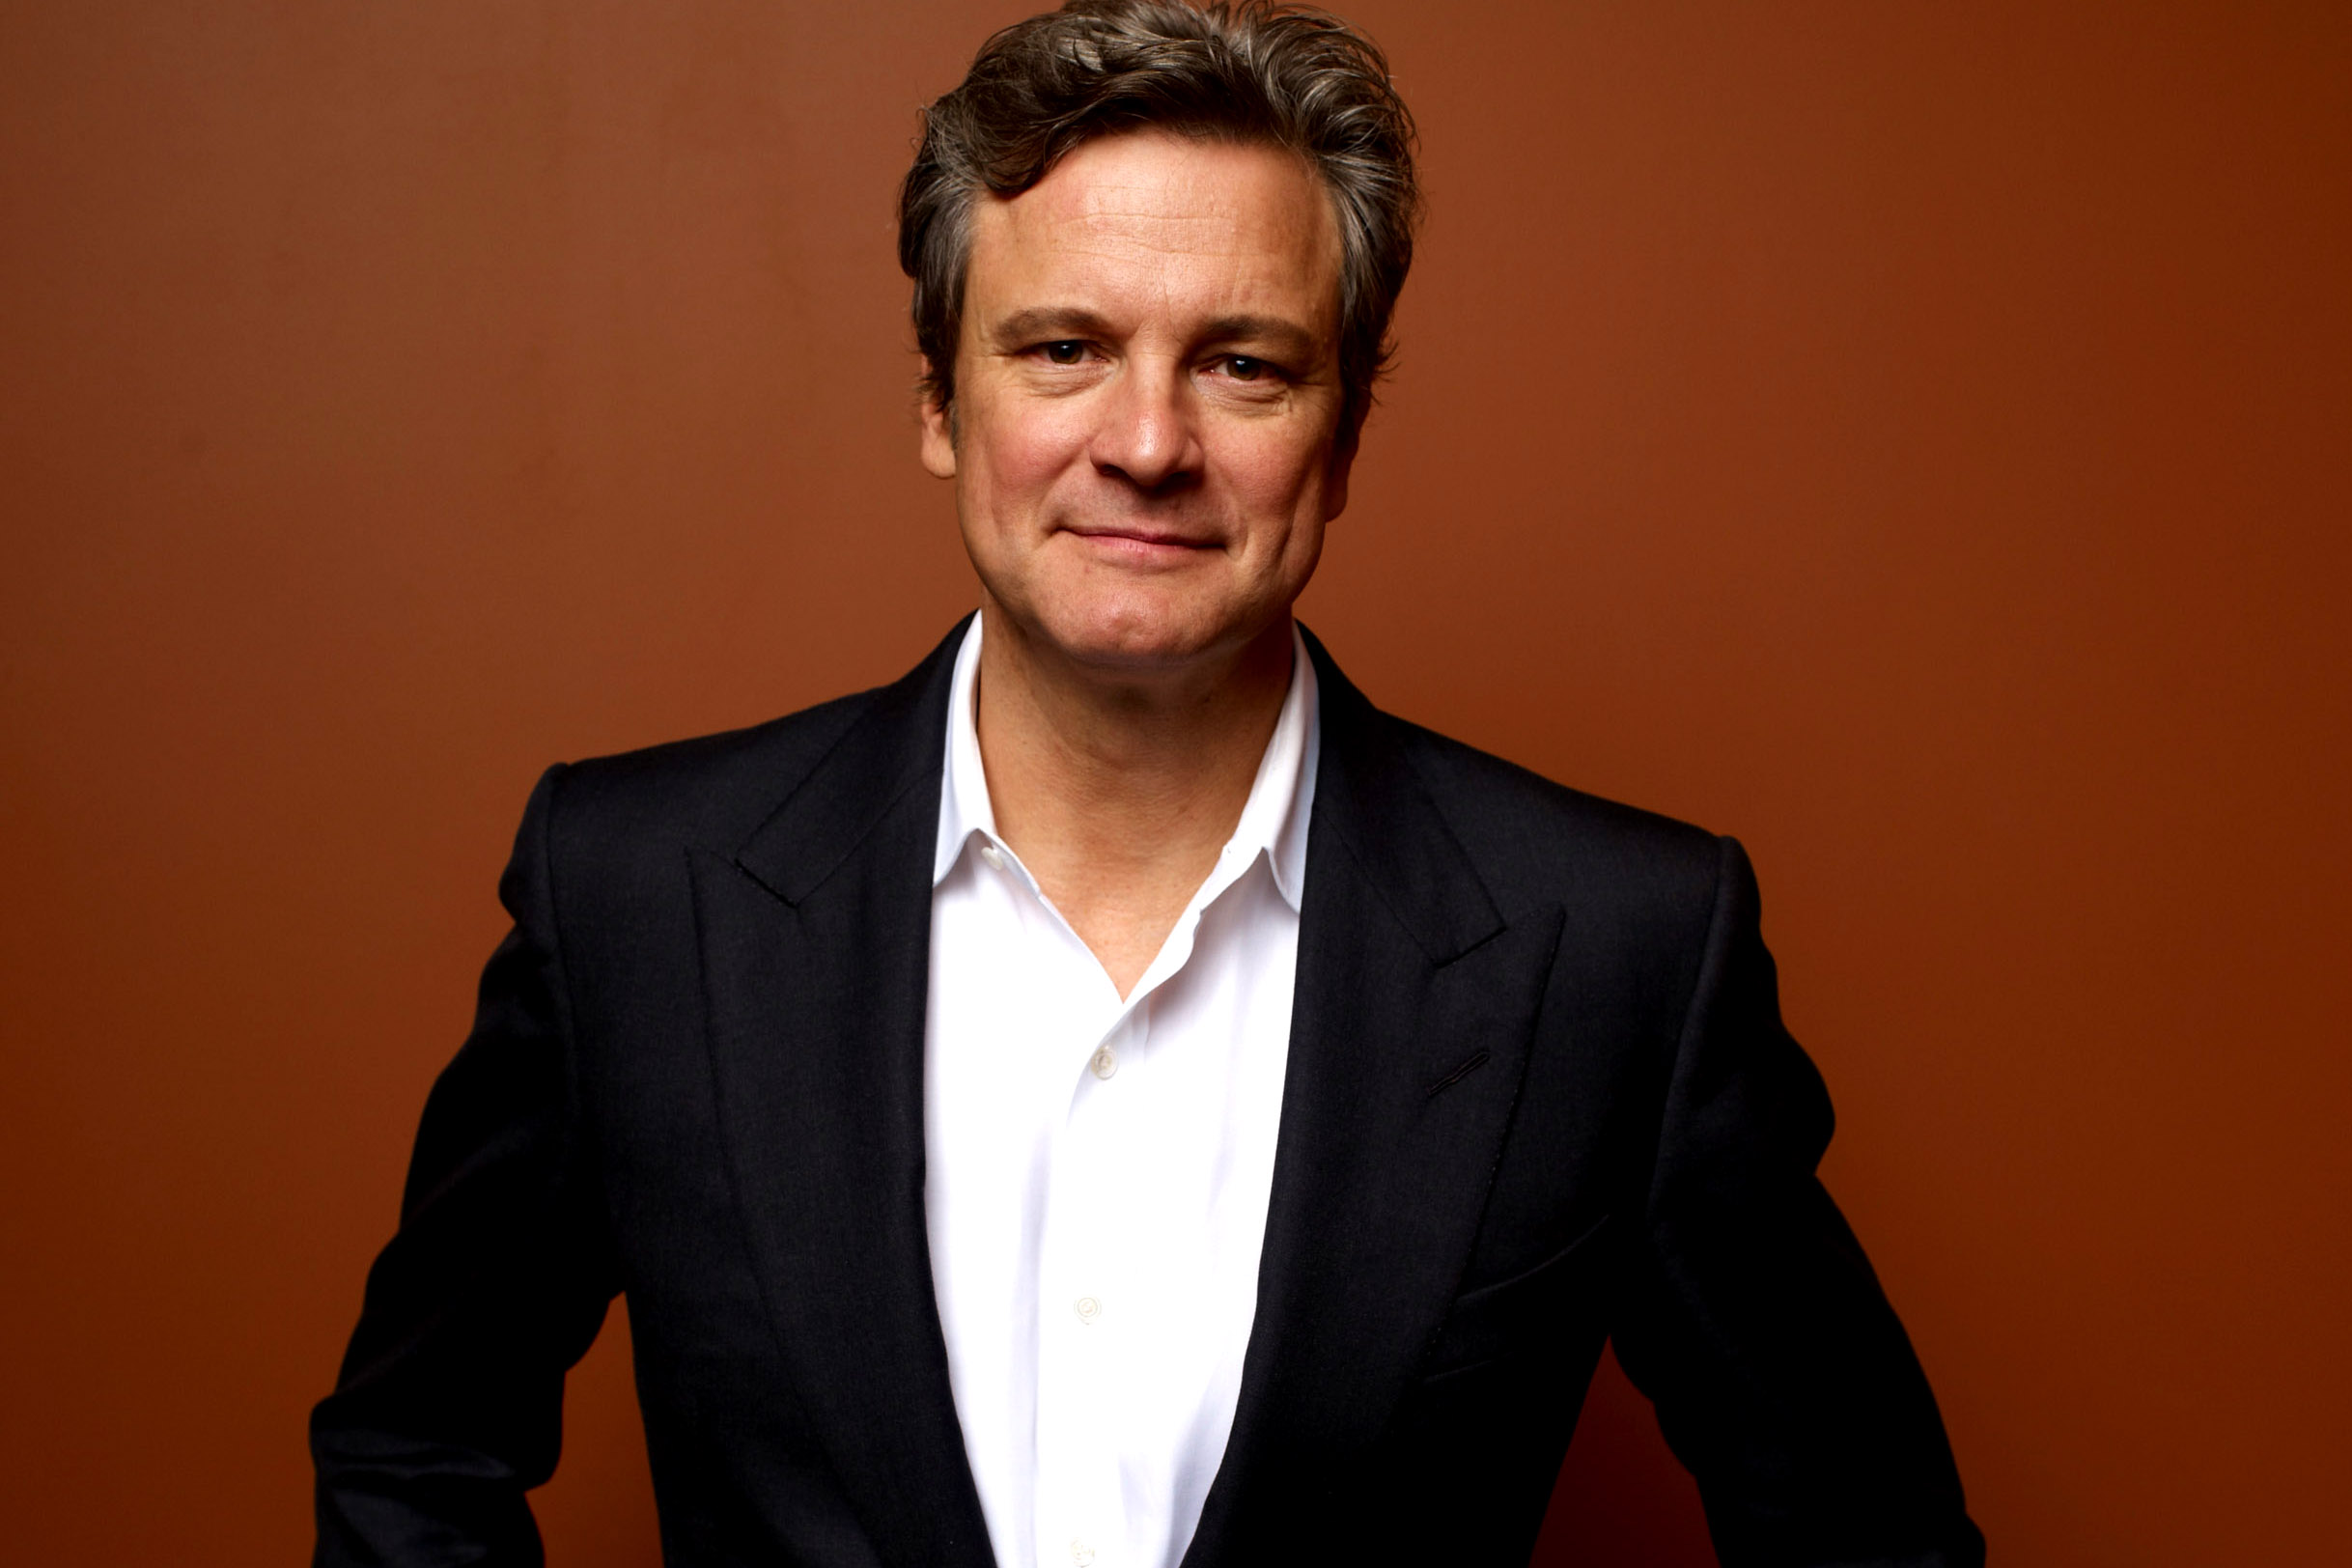 Colin Firth earned a  million dollar salary, leaving the net worth at 15 million in 2017